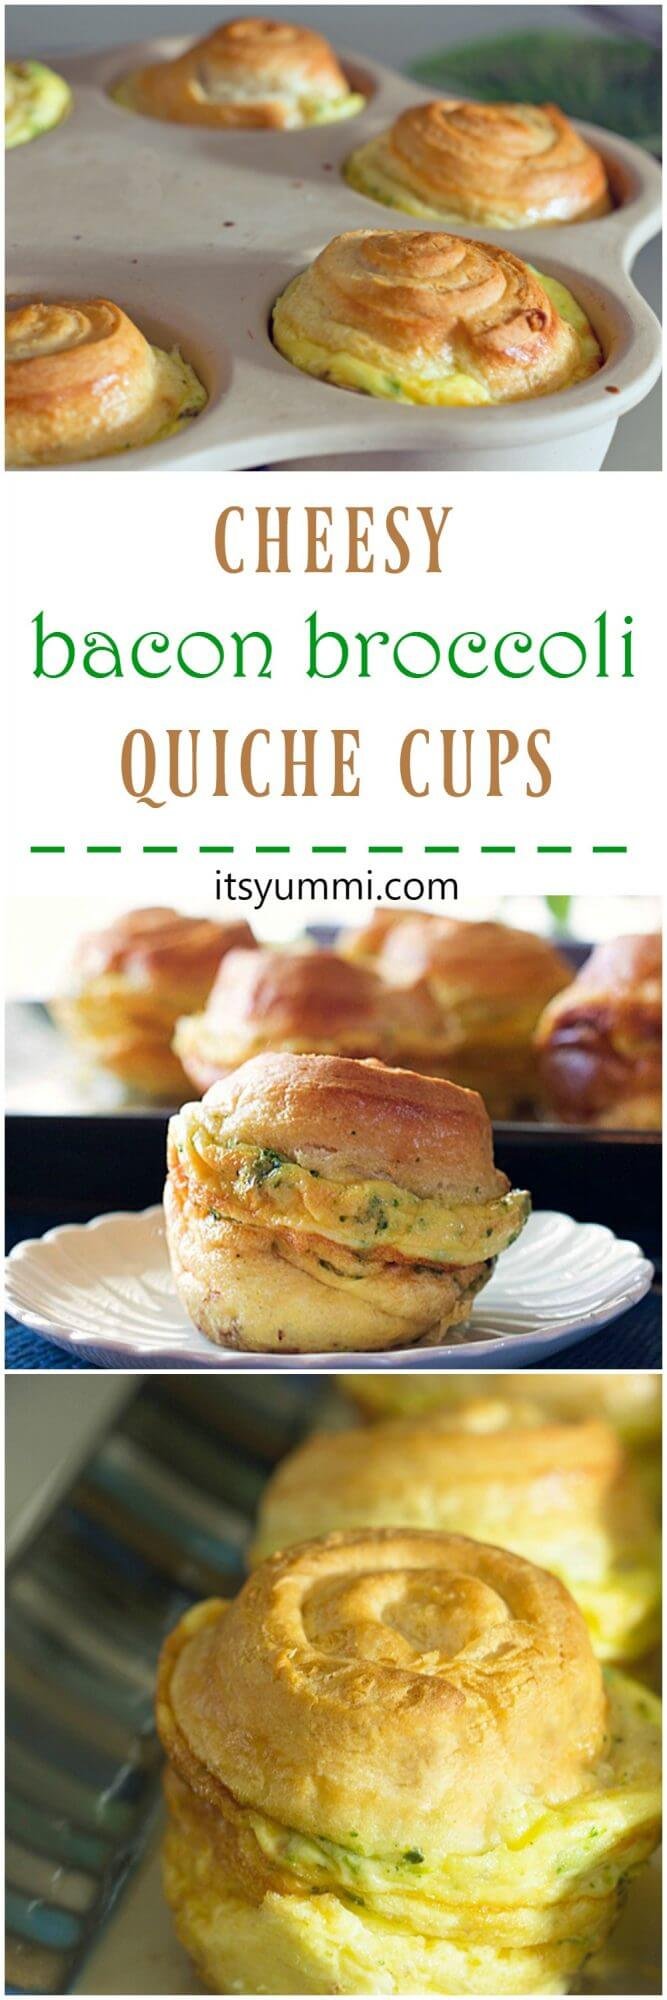 Cheesy Bacon Broccoli Quiche Crescent Cups from ItsYummi.com ~ Fluffy eggs, veggies and Kerrygold cheese are baked up inside of crescent rolls! YUM!